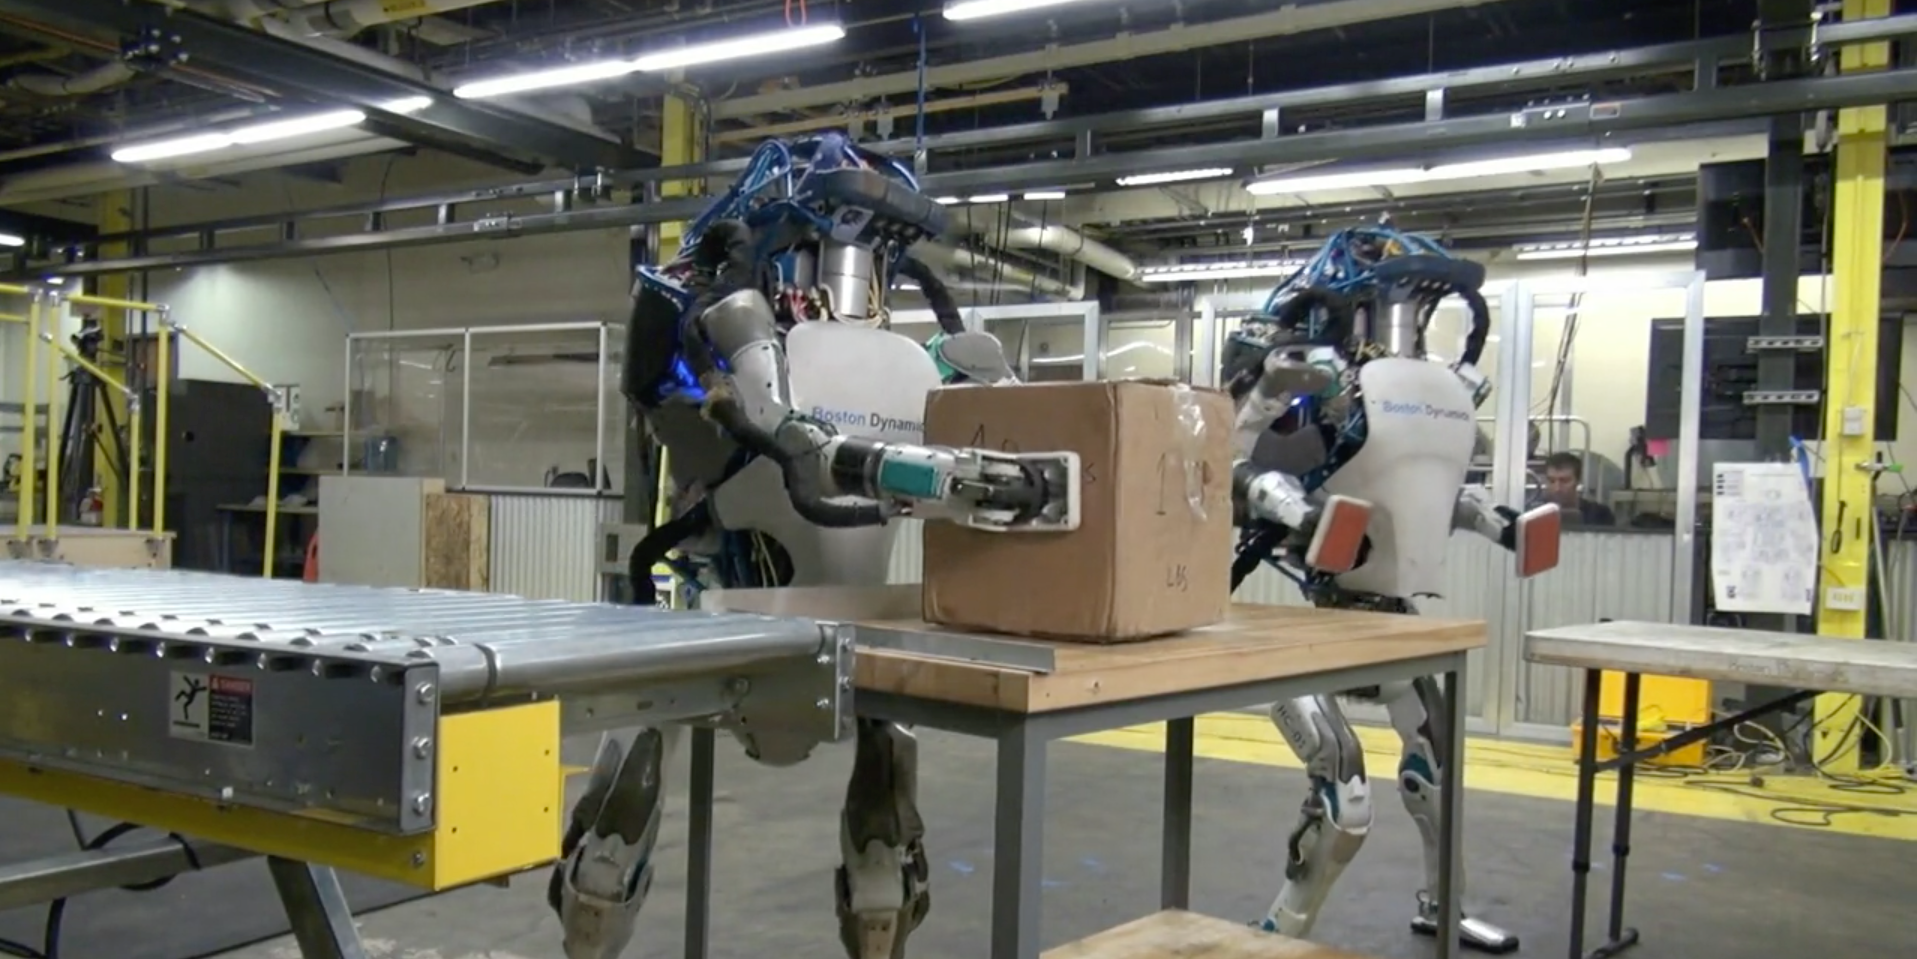 Robots-and-ai-are-taking-over-for-human-completed-tasks-faster-than-we-thought